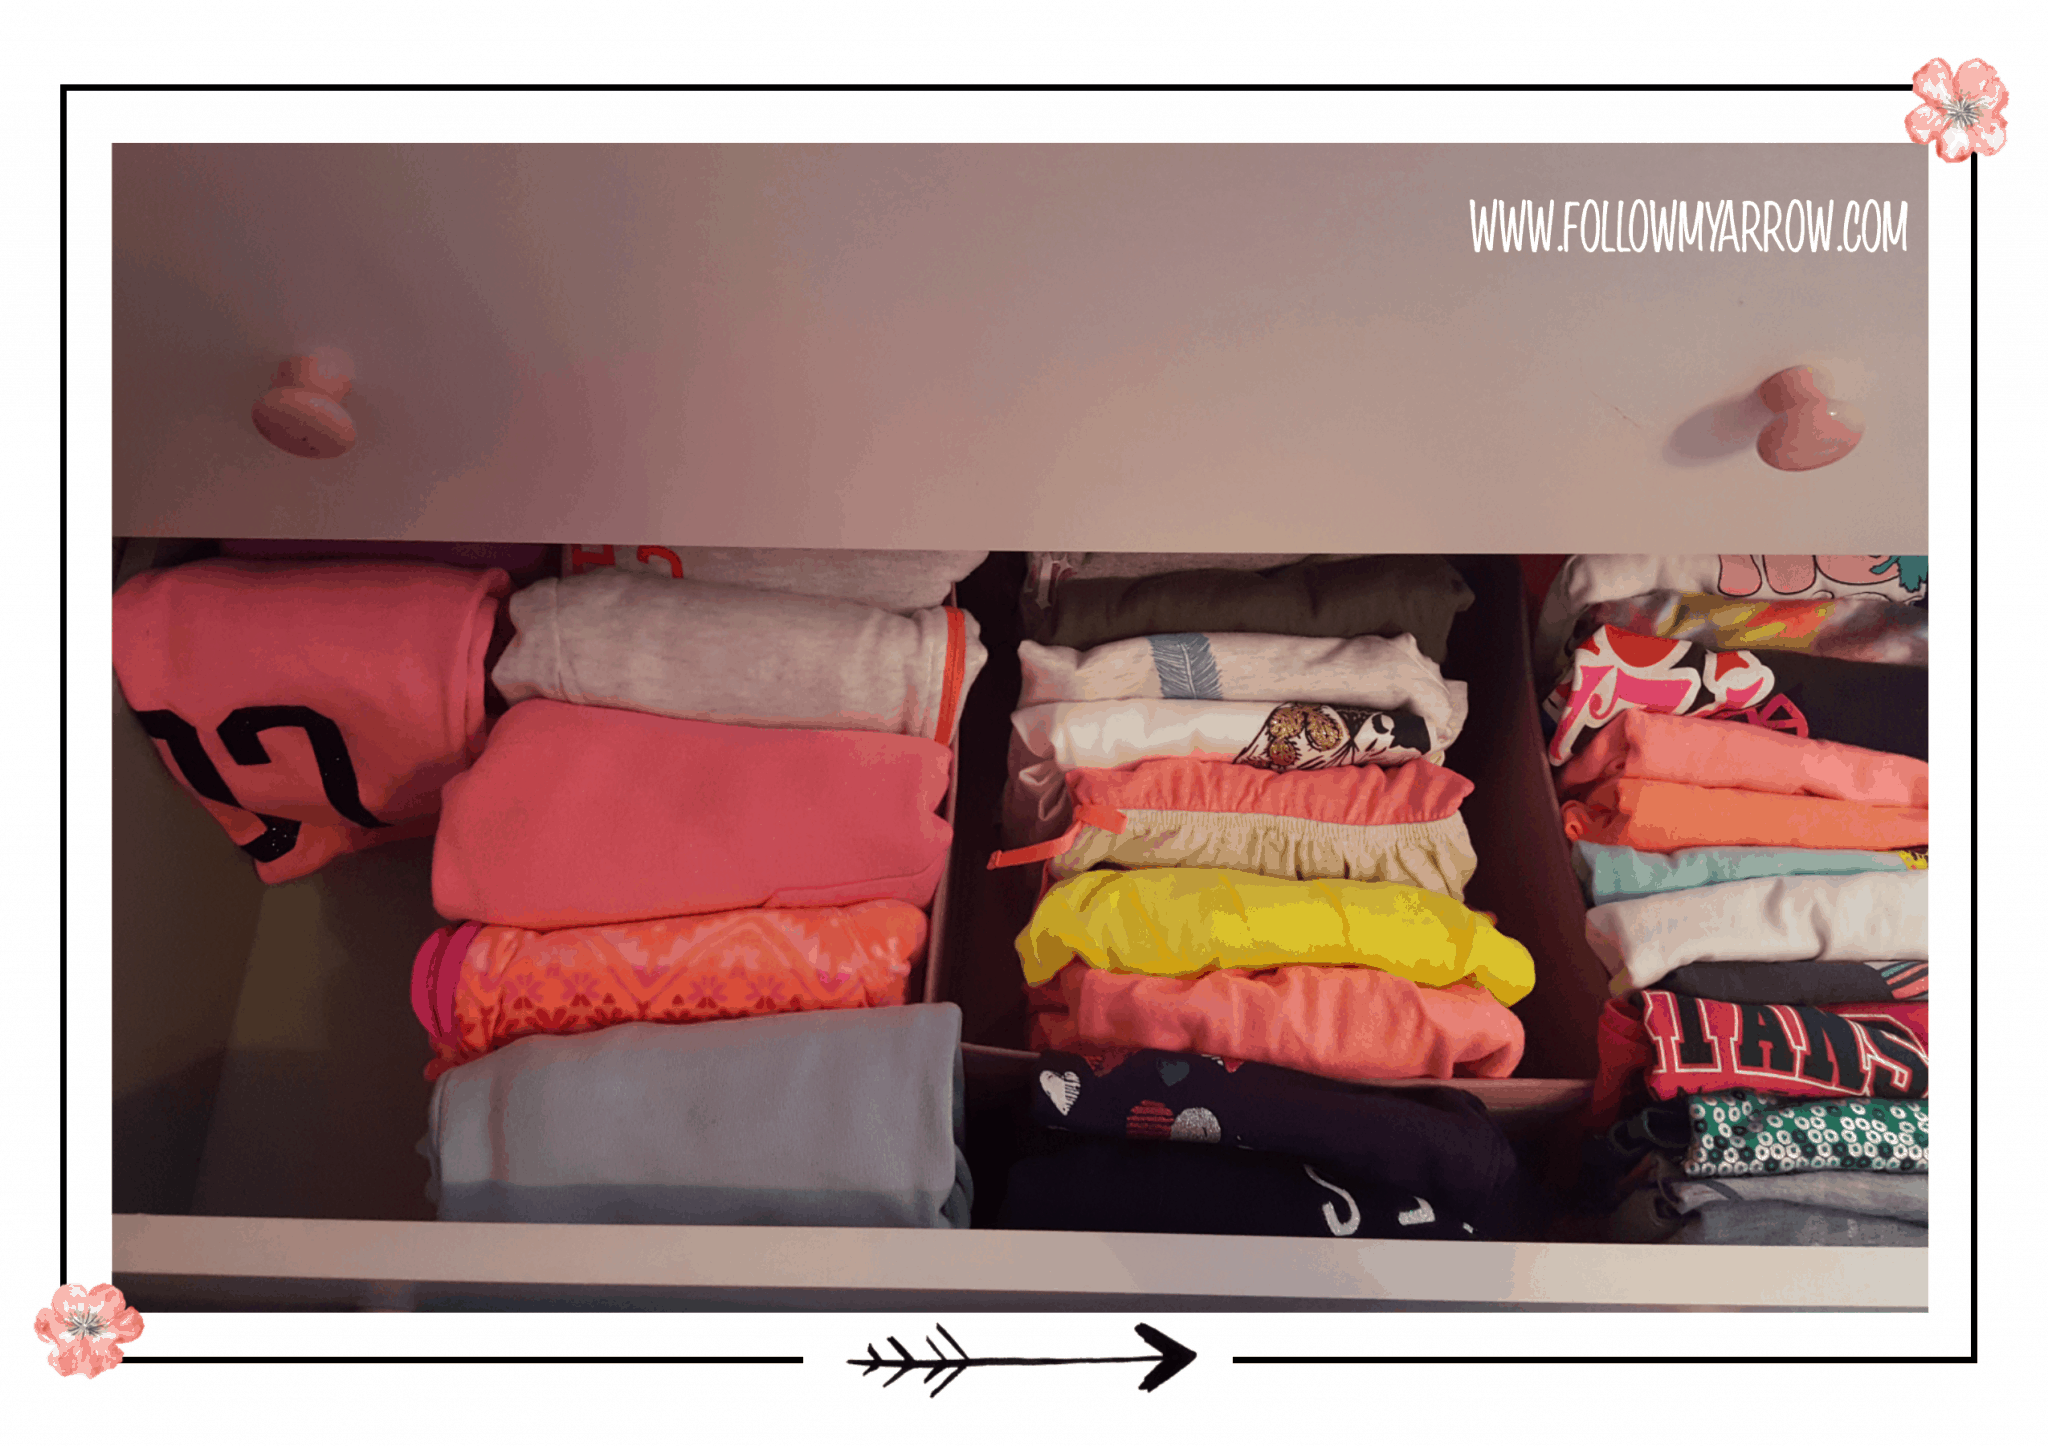 Middle Drawer - Shirts & Sweatshirts